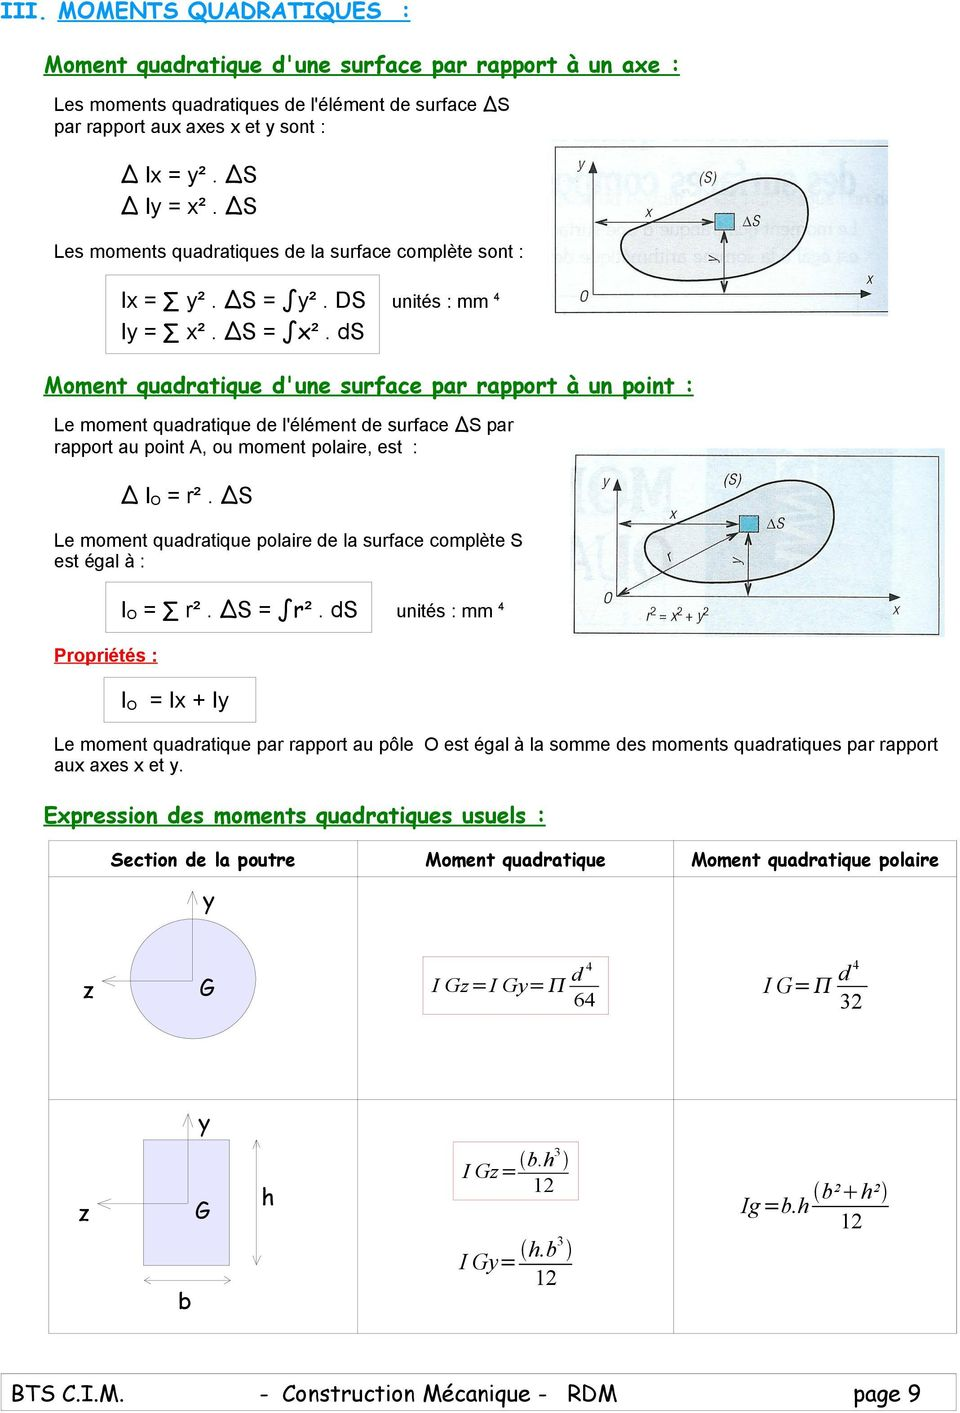 ds unités : mm 4 Moment quadratique d'une surface par rapport à un point : Le moment quadratique de l'élément de surface S par rapport au point A, ou moment polaire, est : IO r².